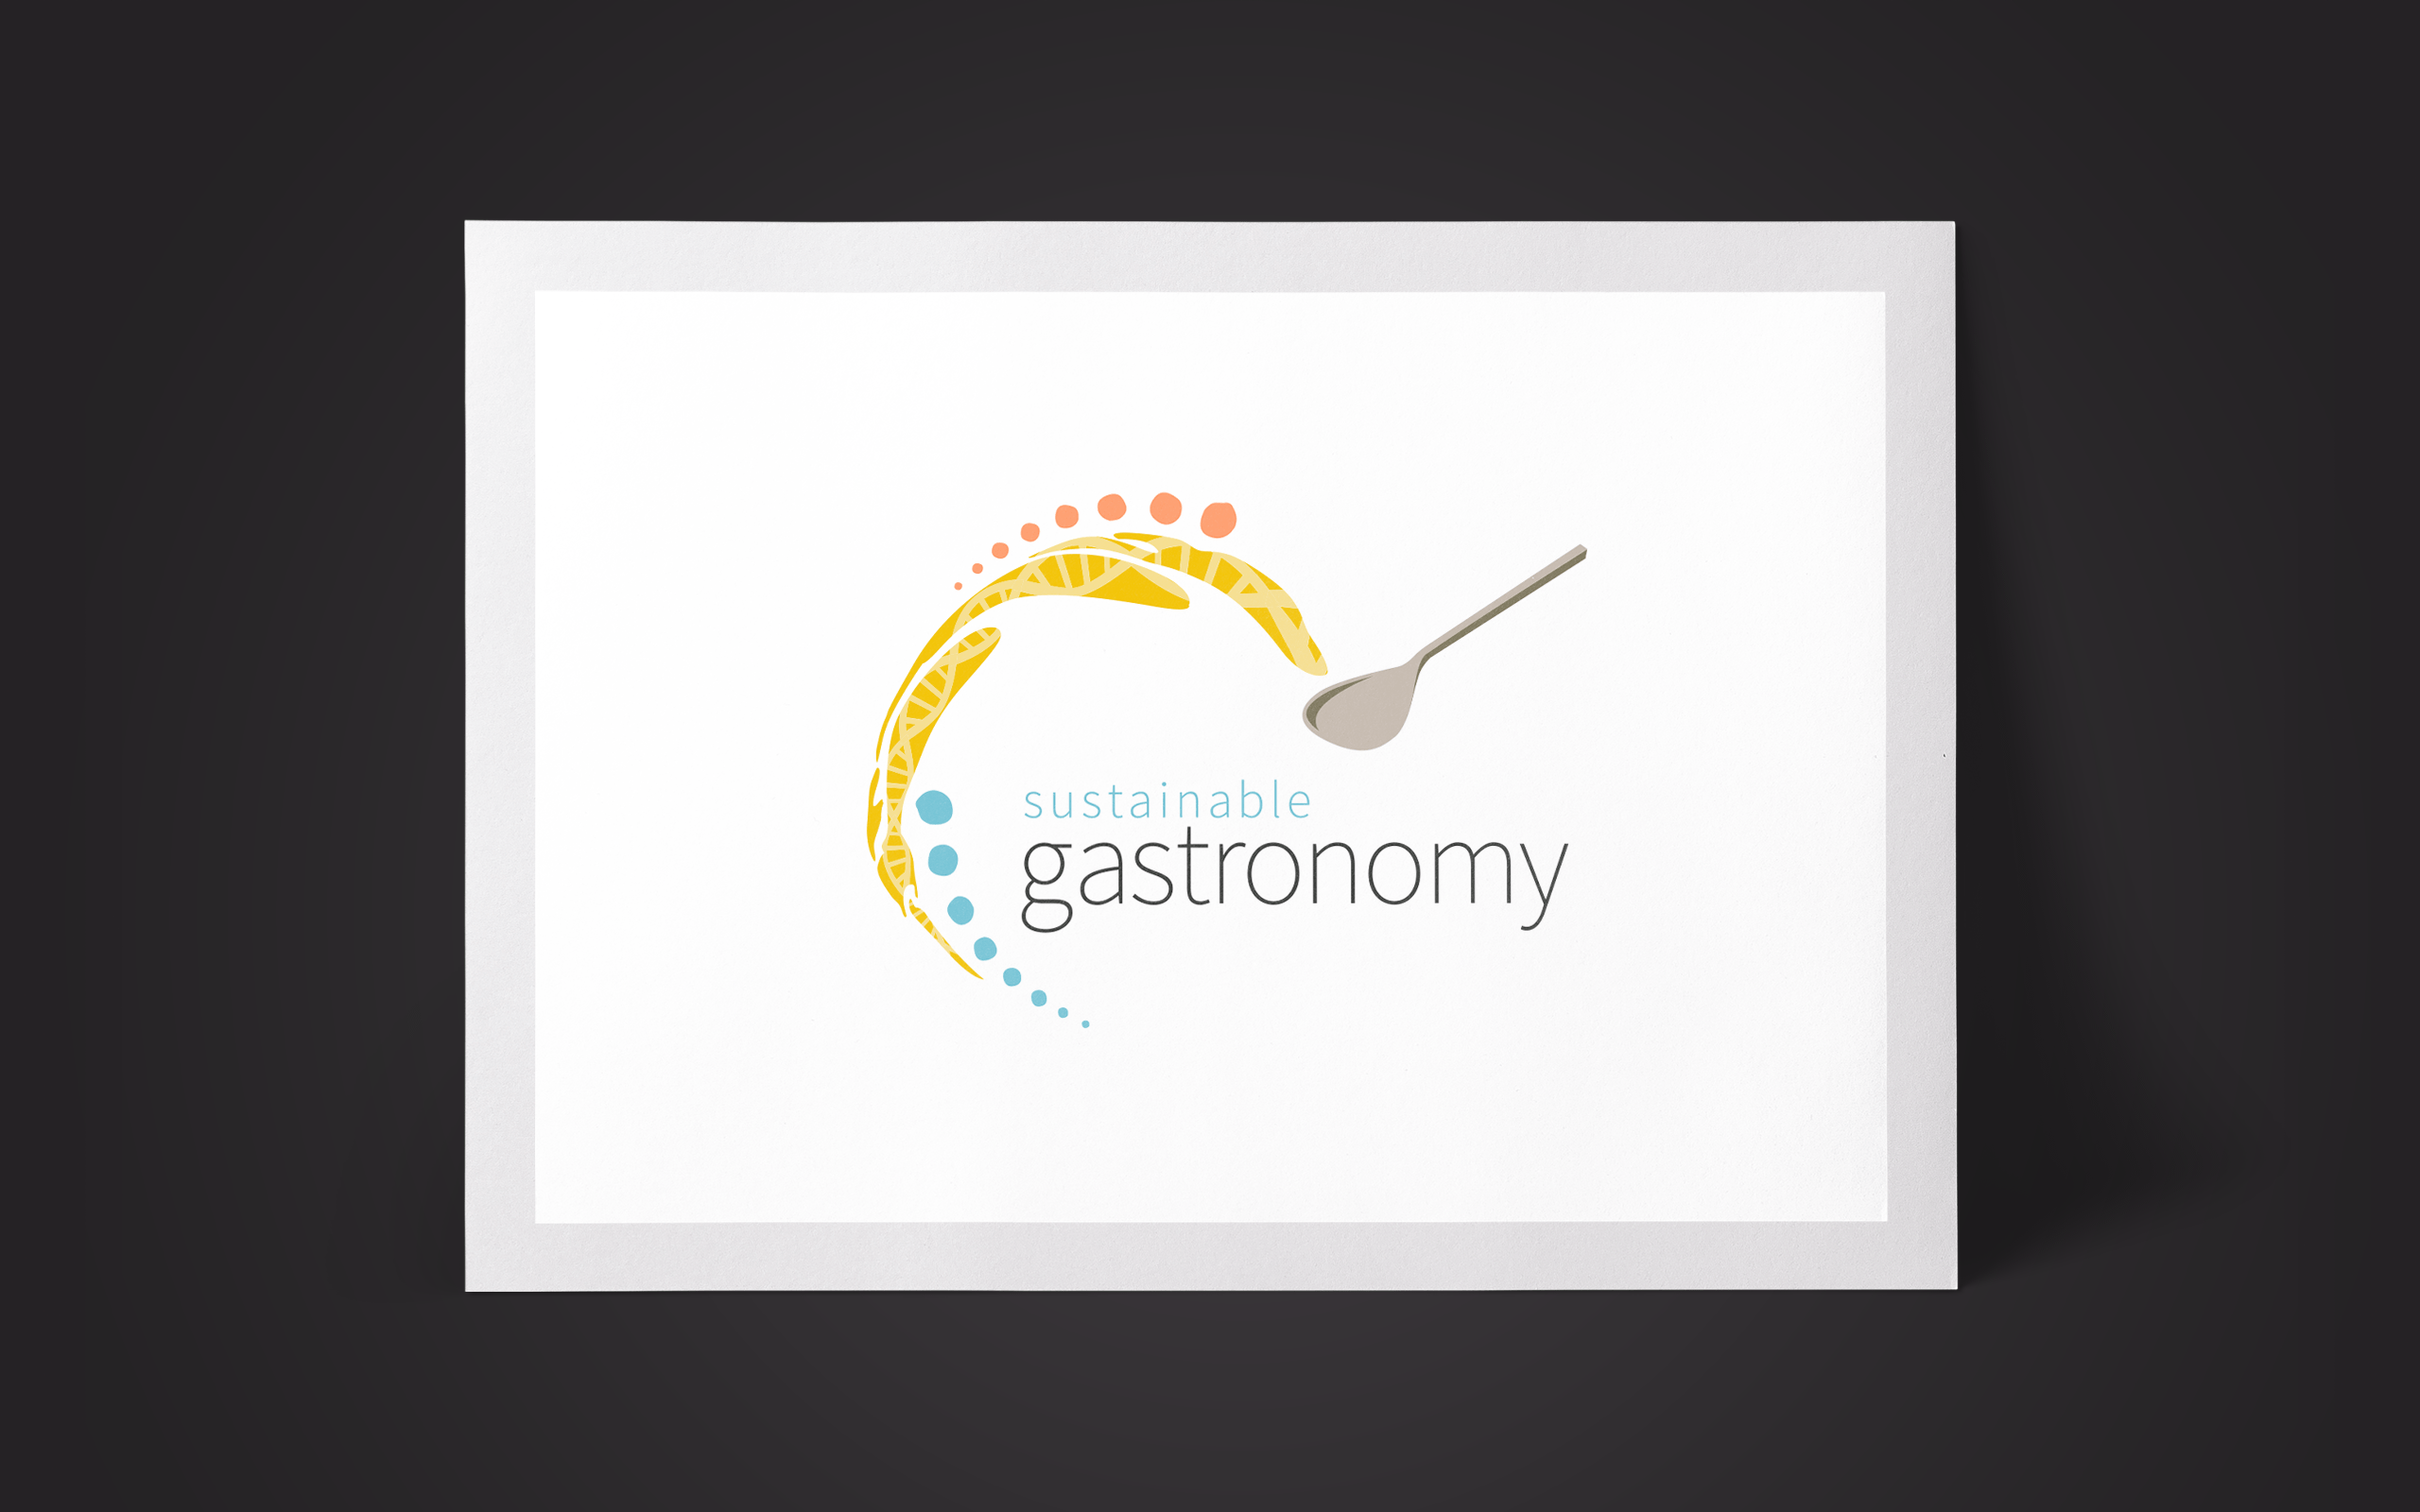 sustainable-gastronomy-final-logo